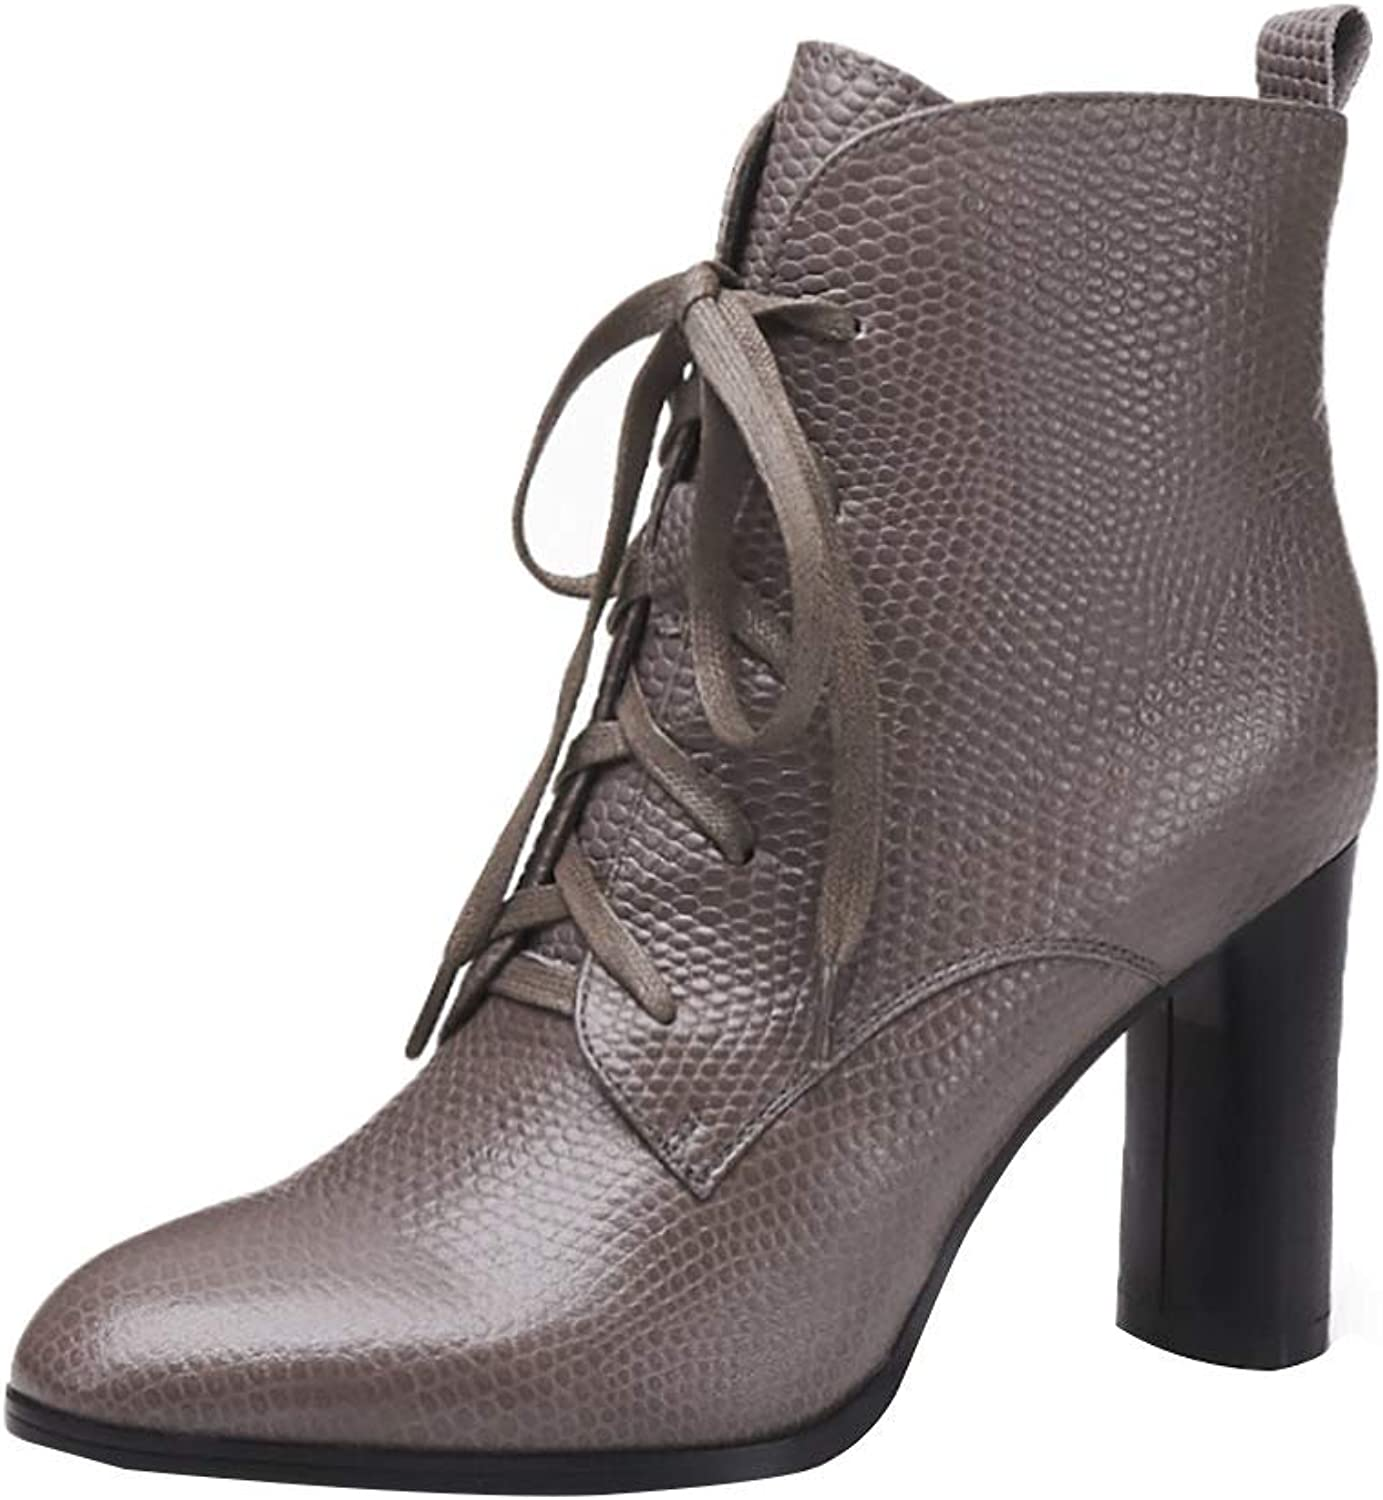 MAYPIE Womens Toattra Leather Zipper Ankle Boots